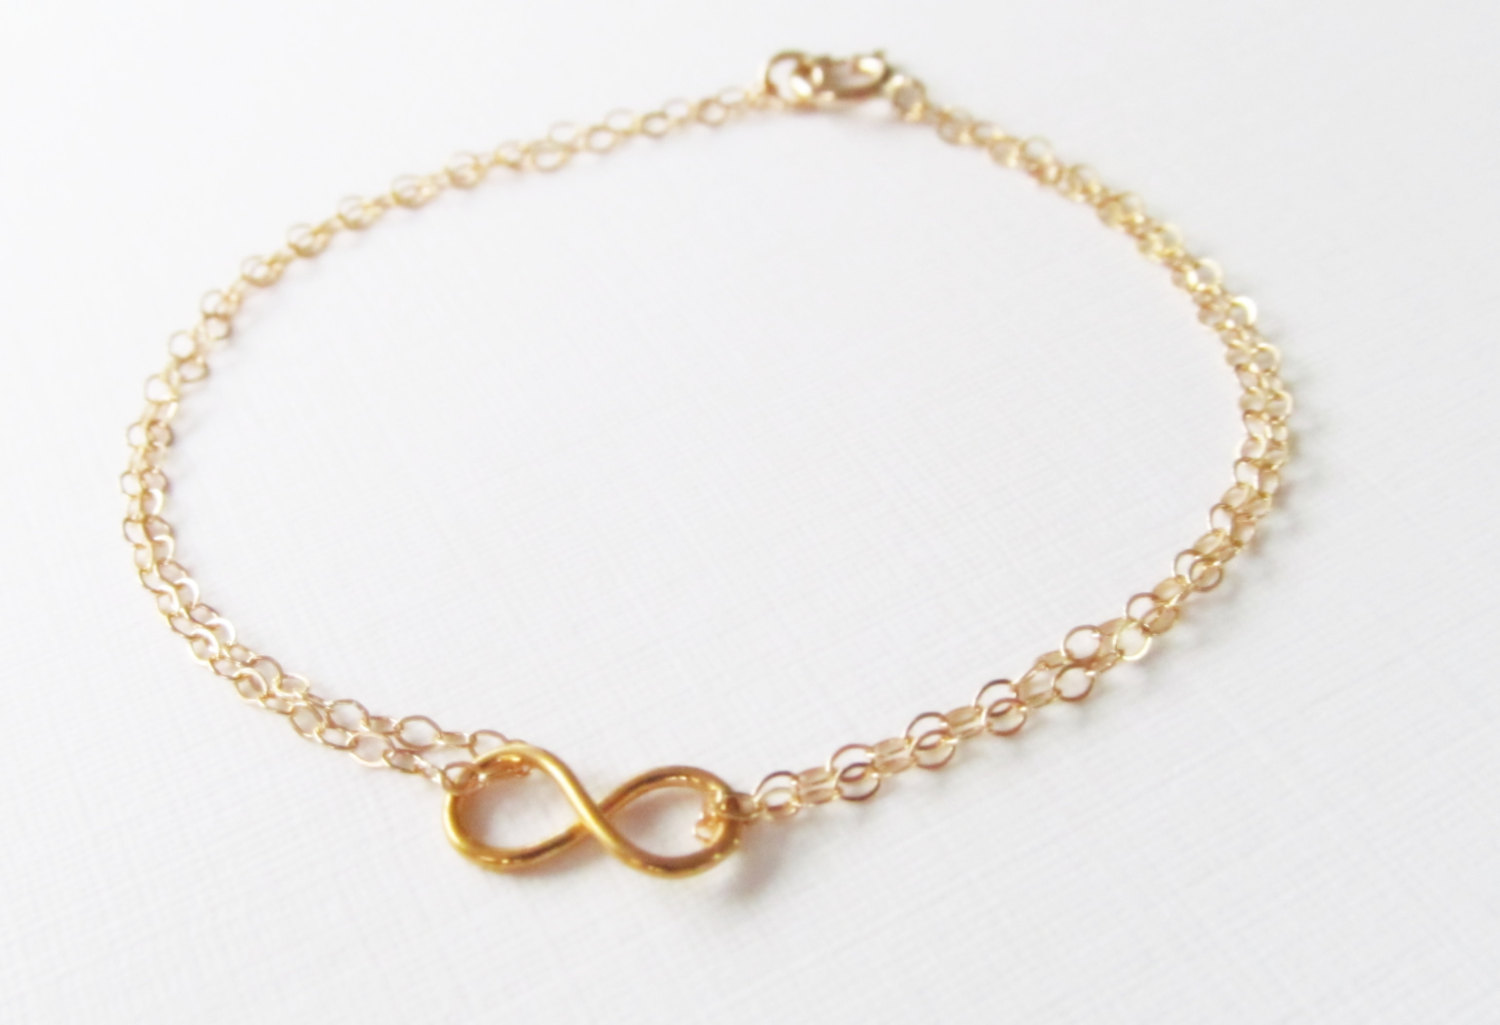 Mini Infinity Bracelet 14kt Gold Filled Gift For Her